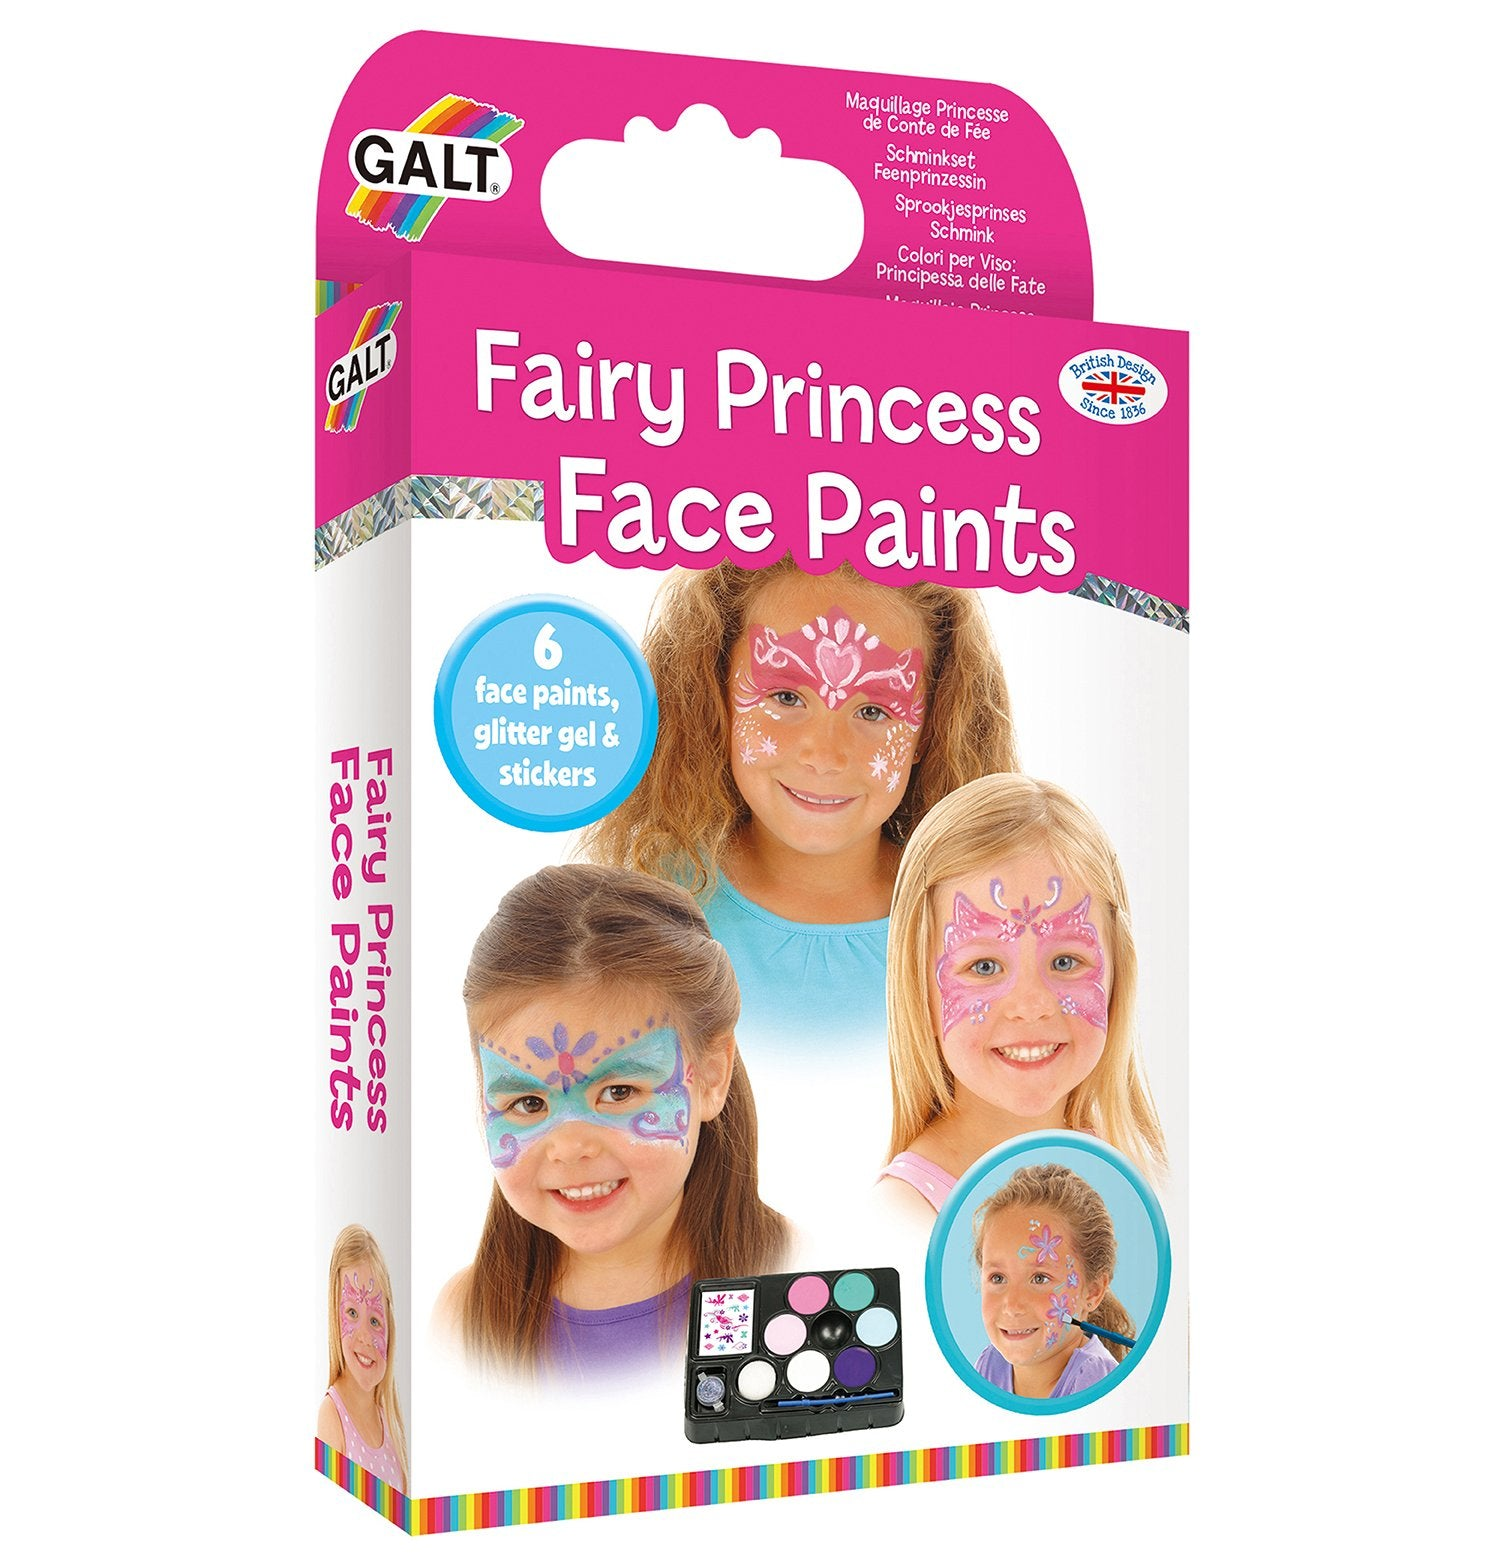 Fairy Princess Face Paints - Galt